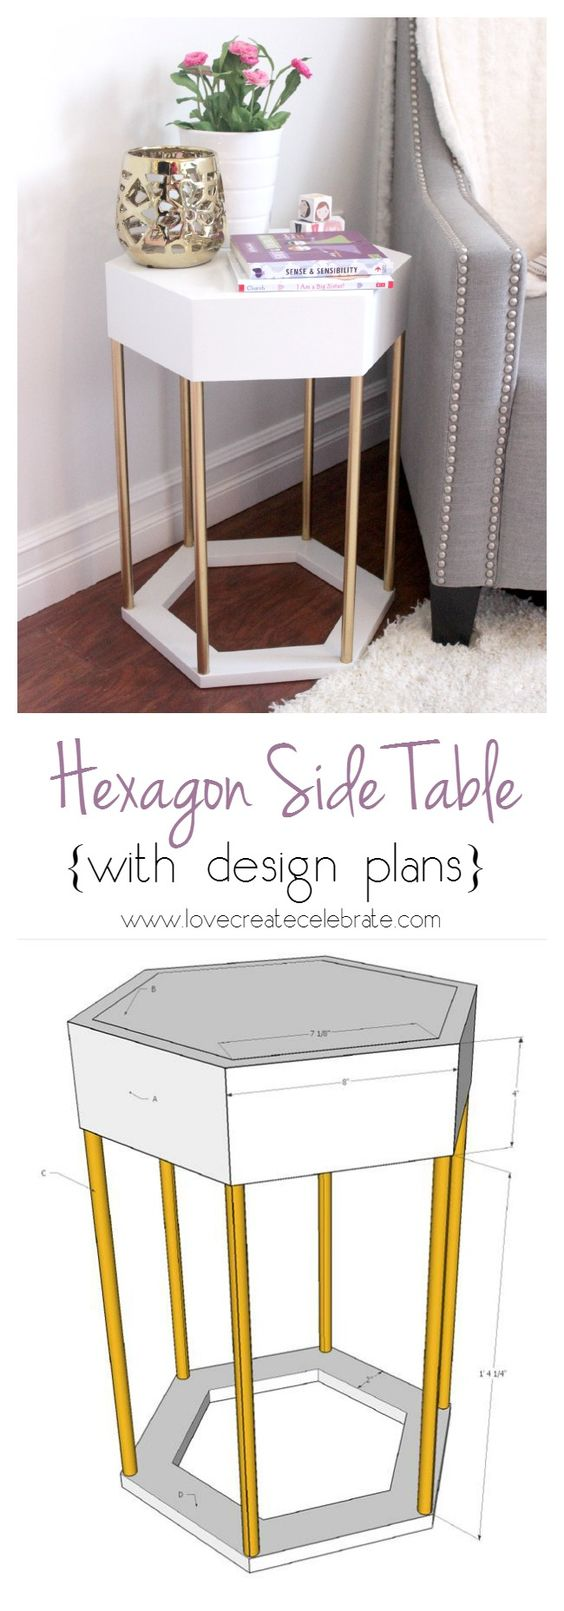 diy patio side concrete cool argos unusual interesting tables bedroom grey copper habitat gold table designer target metal tall bedside mirrored outdoor small ideas kmart scandi